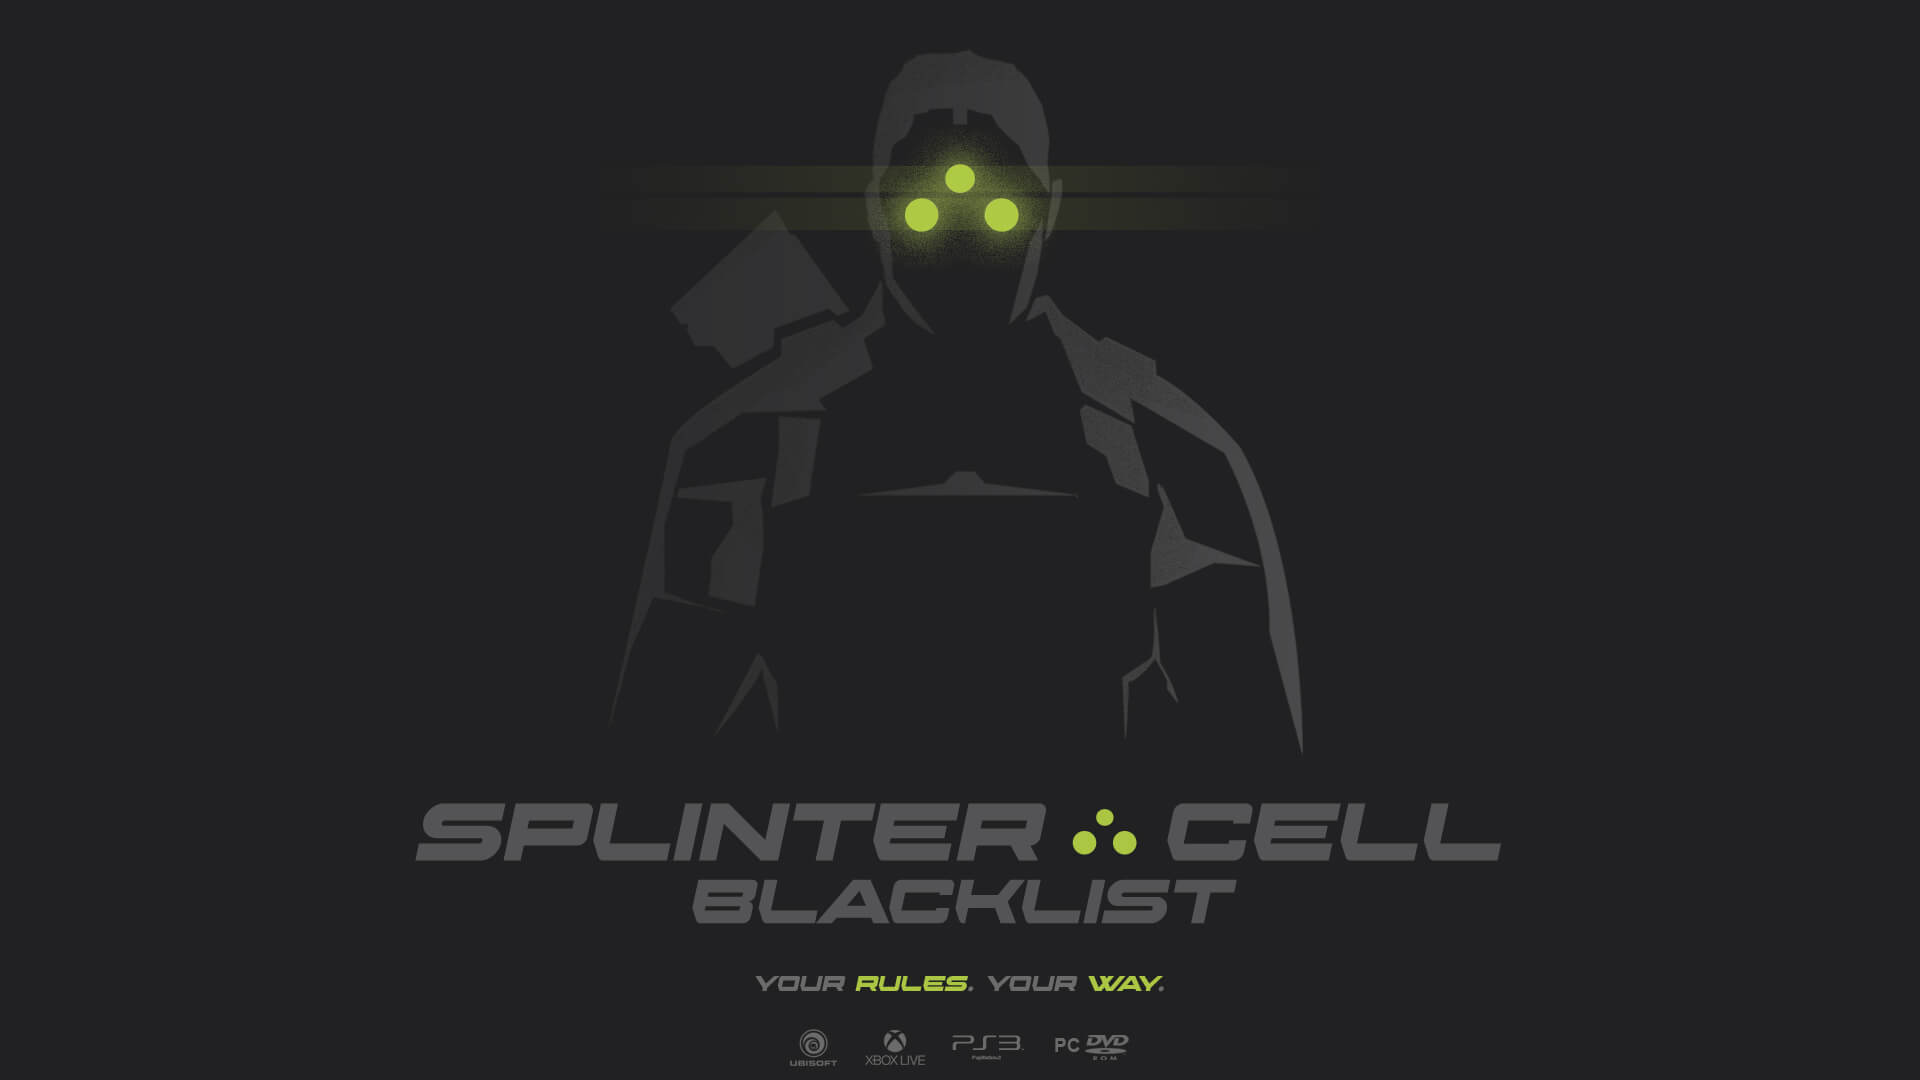 splinter_cell_wallpaper